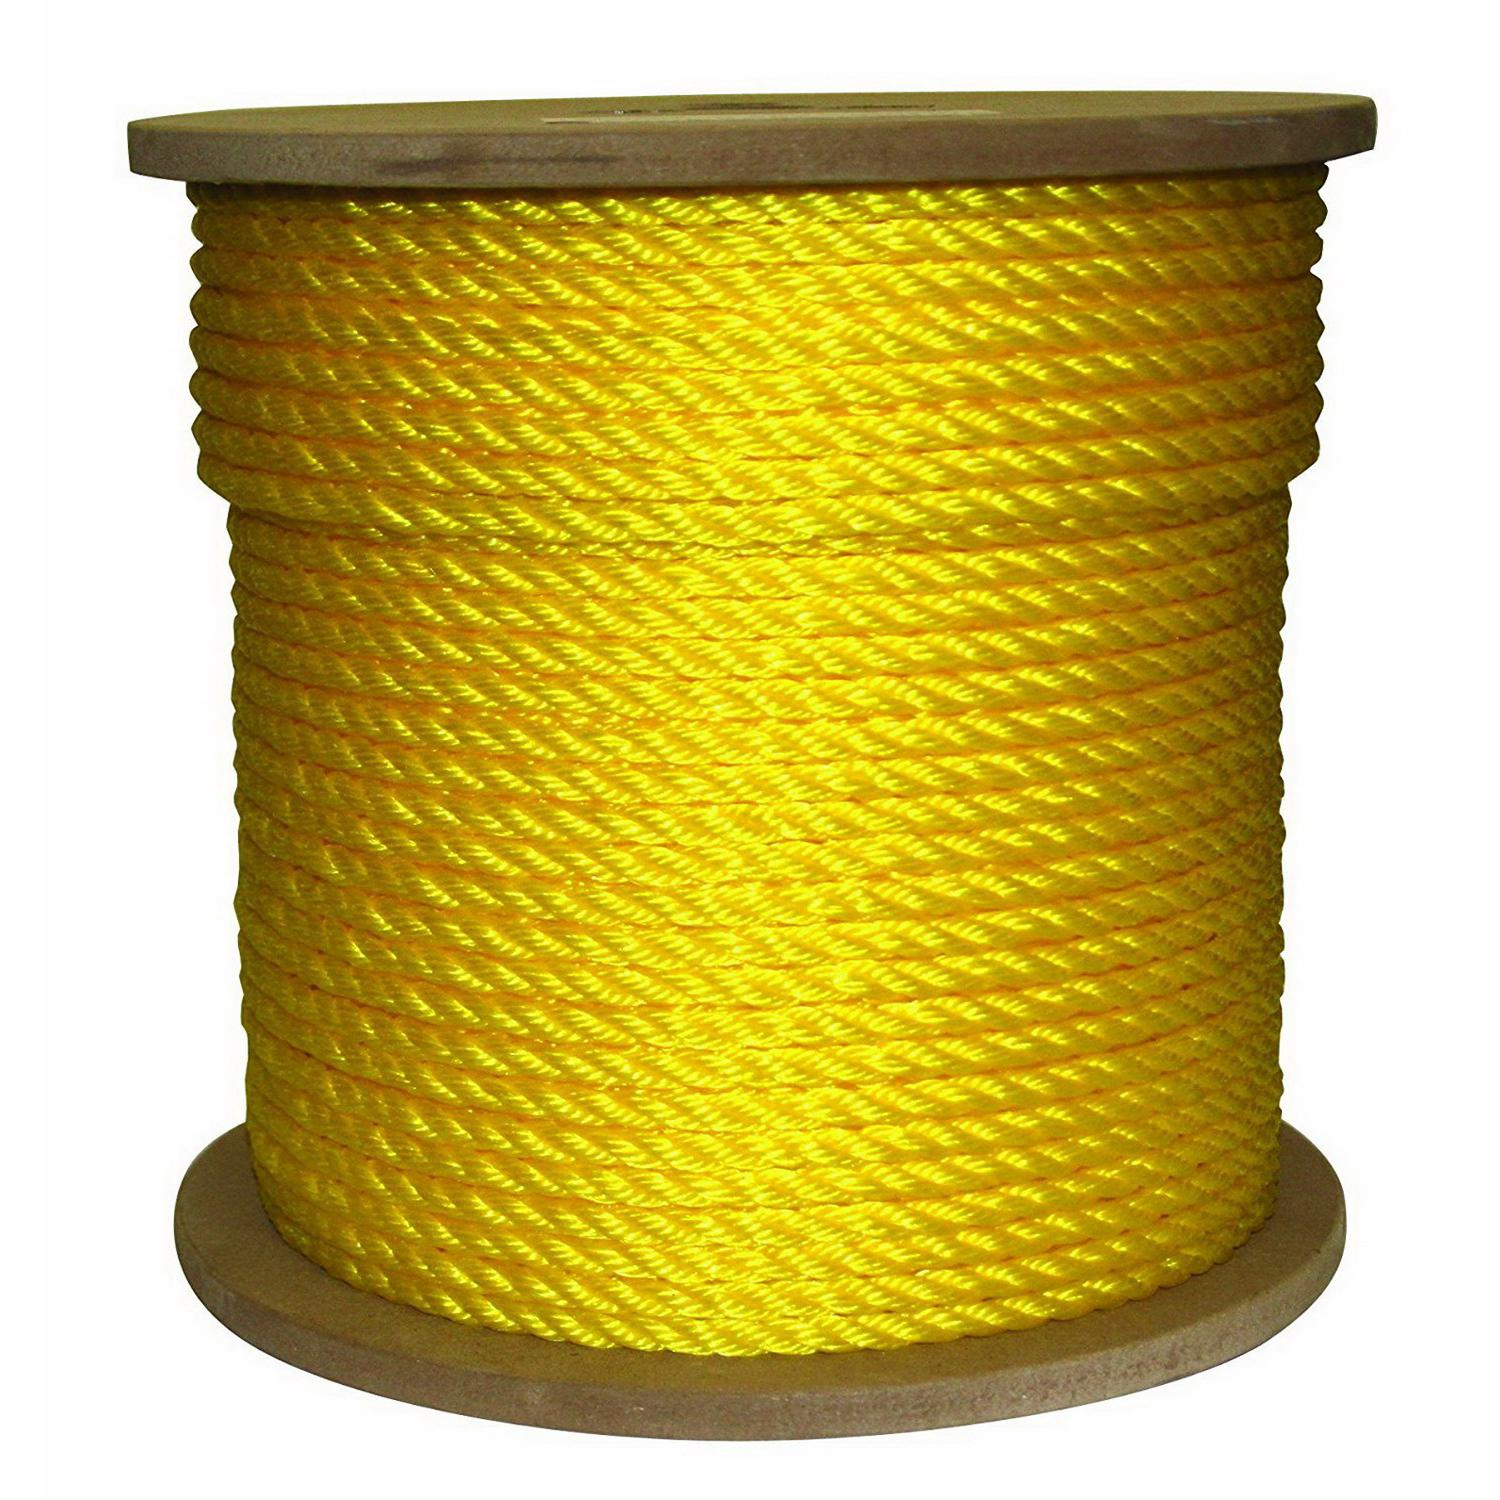 Global Manufacturing GYR14600 Pulling Rope 1/4 Inch x 600 ft 1130 lb ...